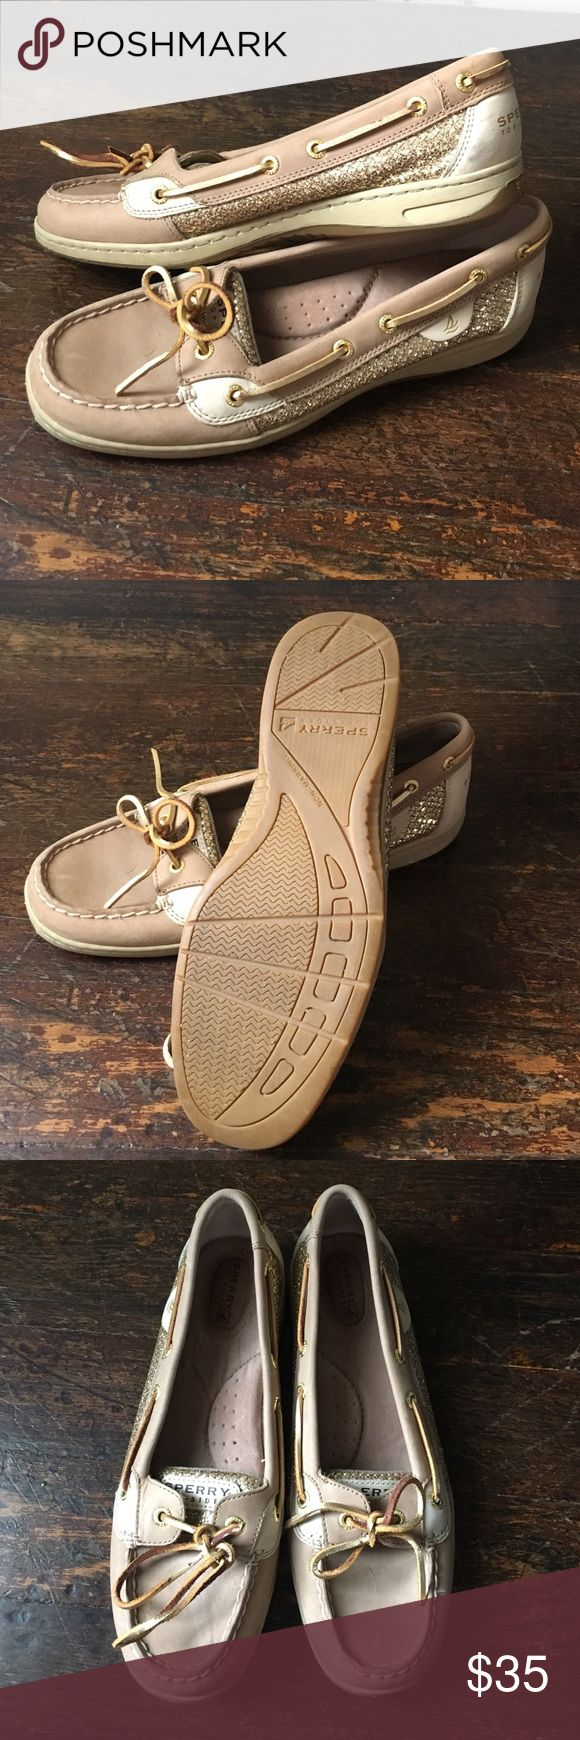 NWOT Sperry Boat Shoes NWOT leather Sperry loafers with golf detailing. Sperry Shoes Flats & Loafers